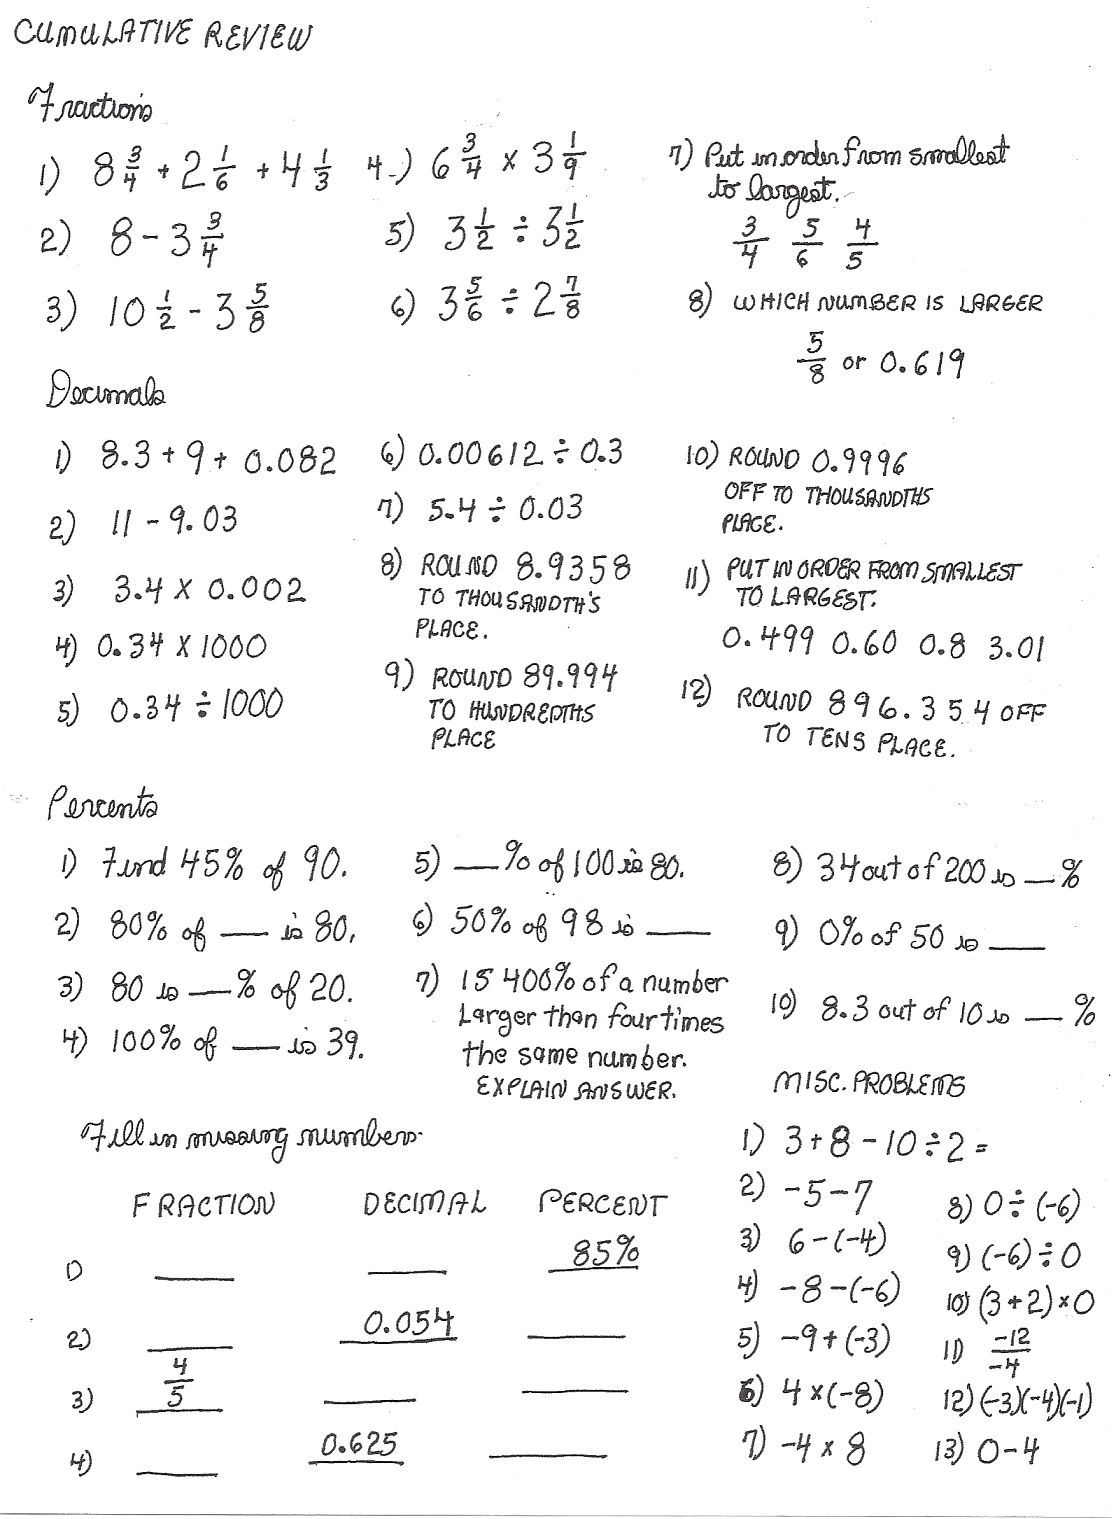 Cobb Adult Ed Math: 2010-08-29